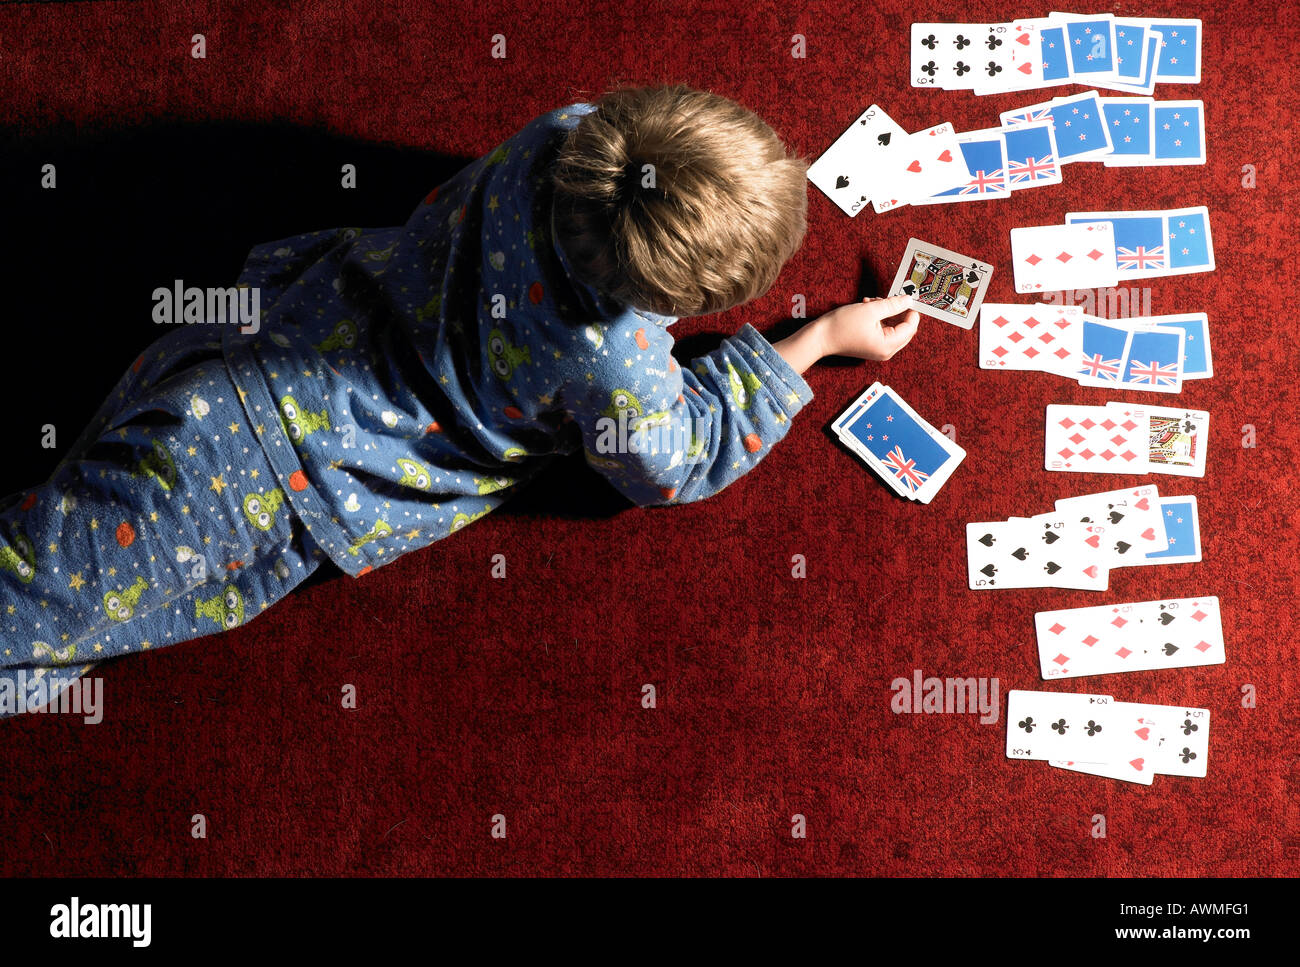 boy laying down and playing cards by himself - Stock Image